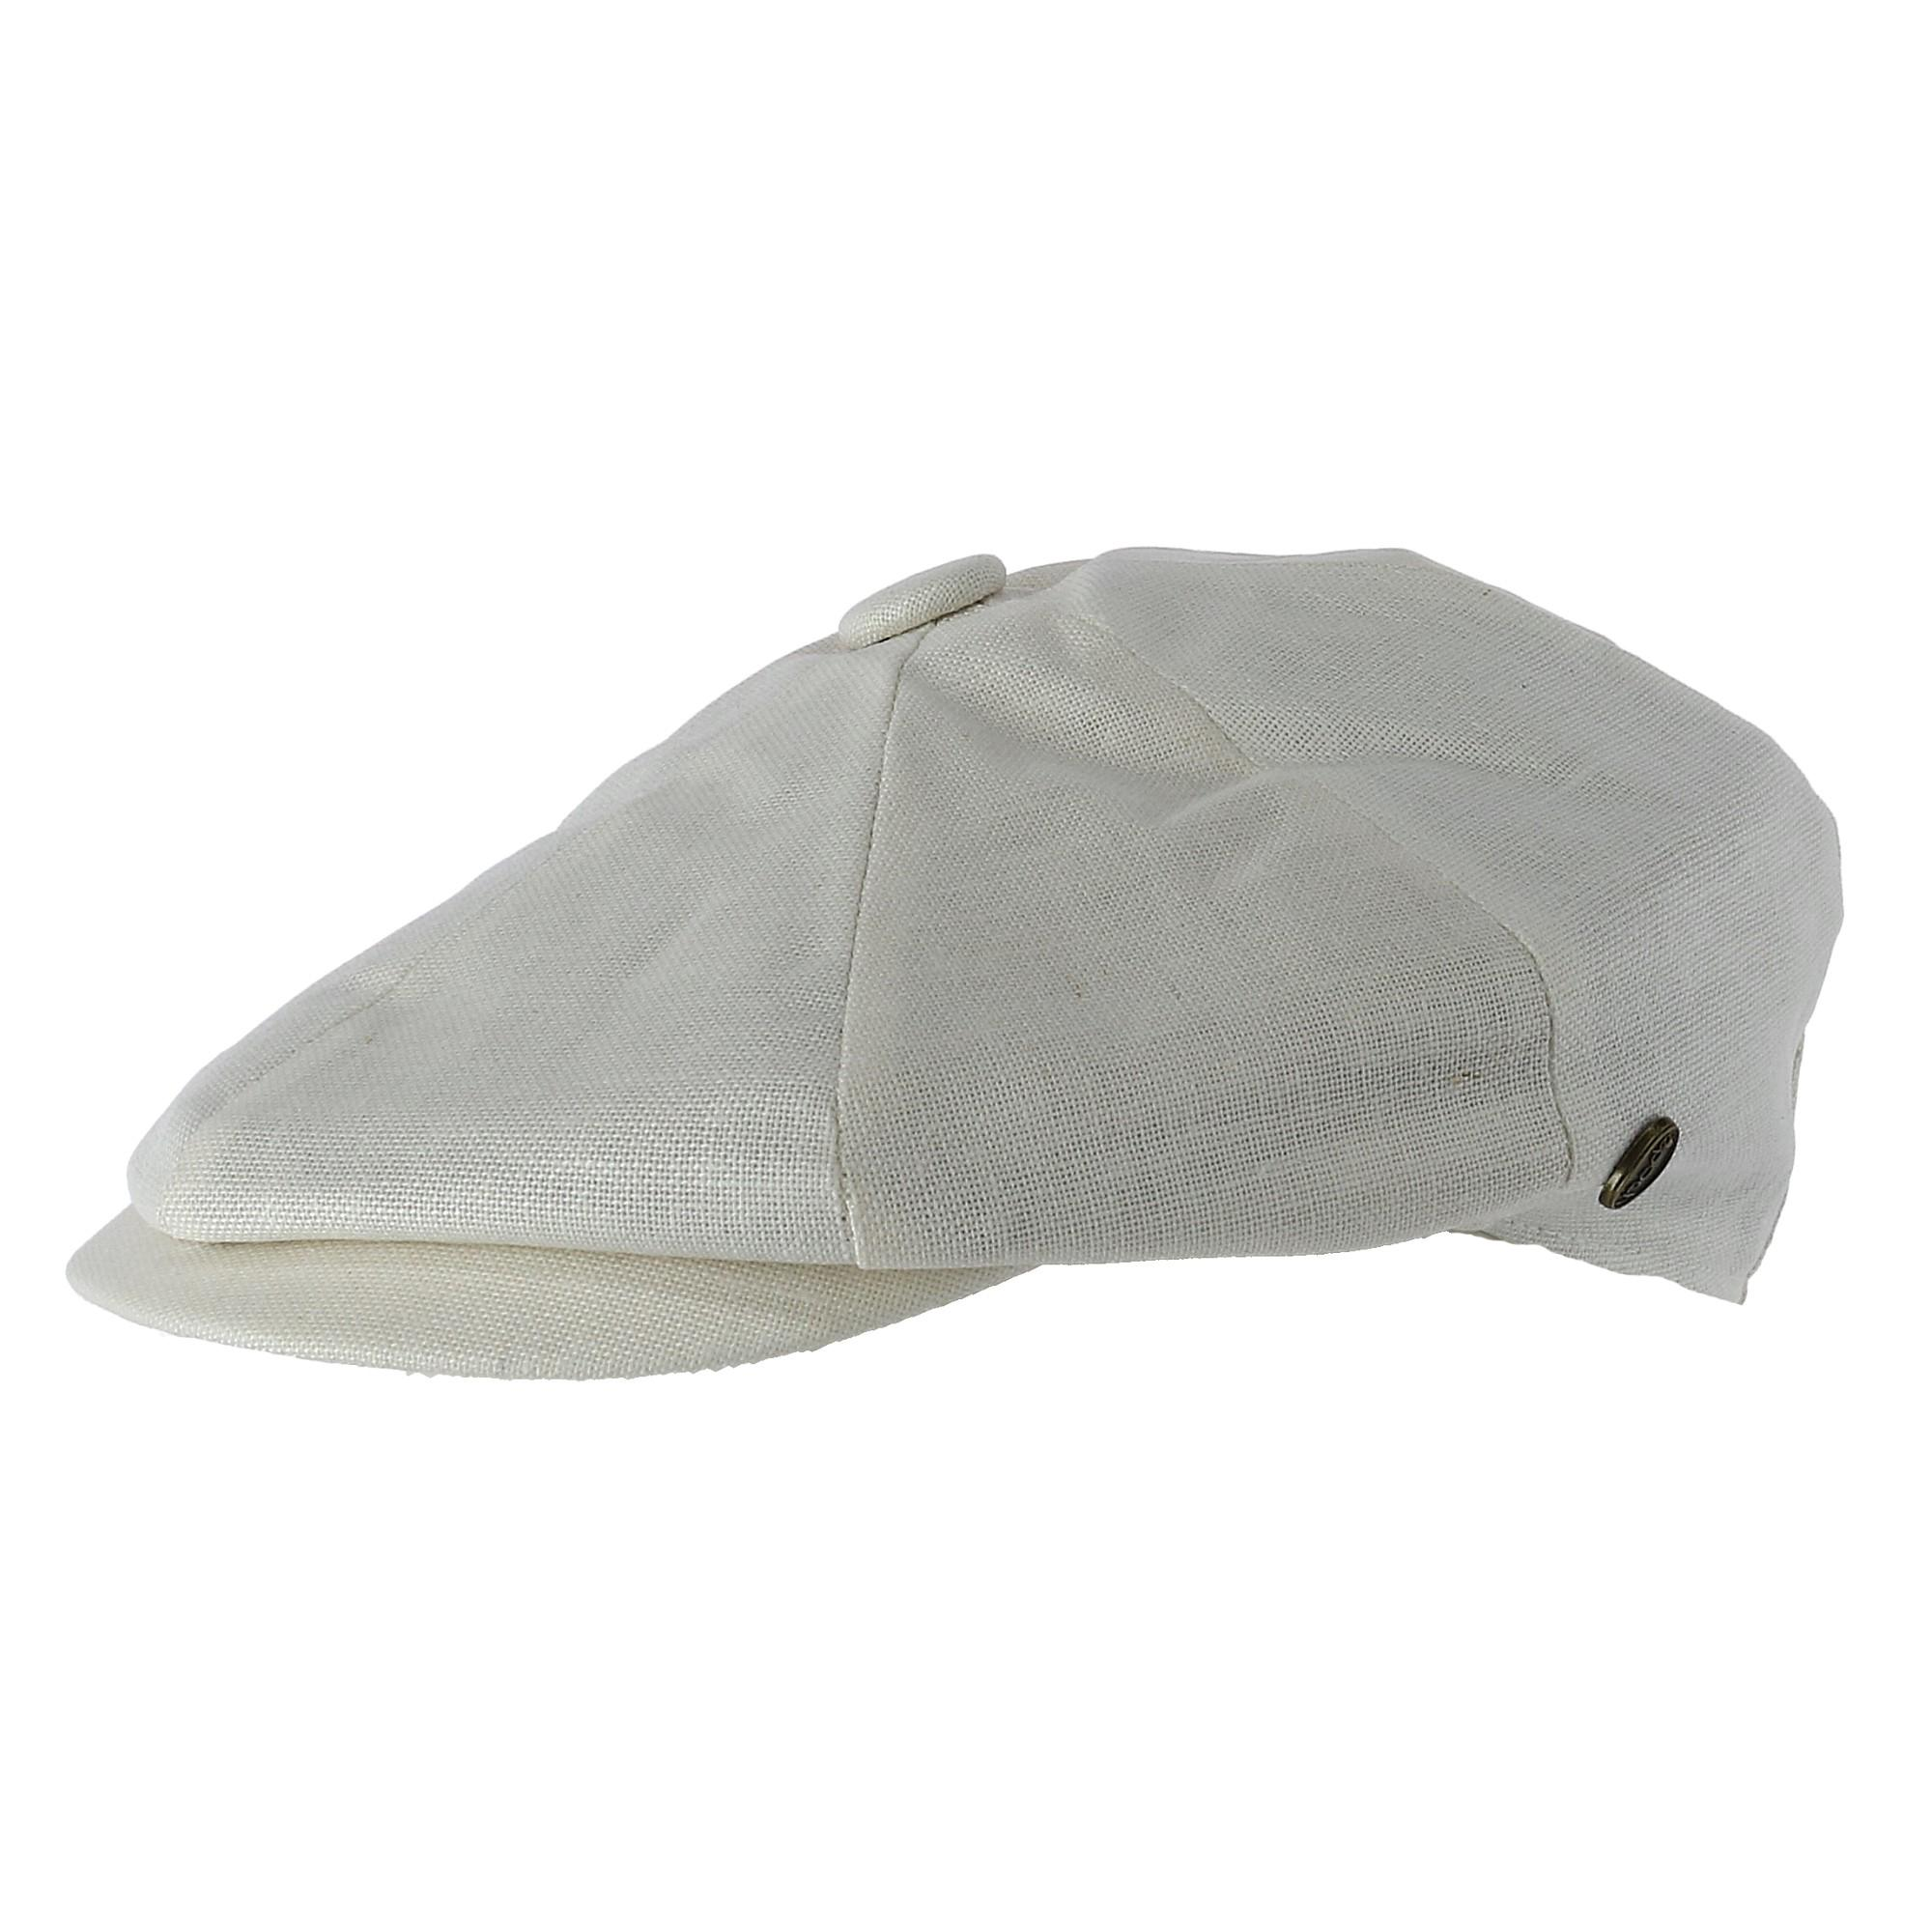 d138036b607c8 Details about New Epoch Hats Company Men s Linen Newsboy Cap